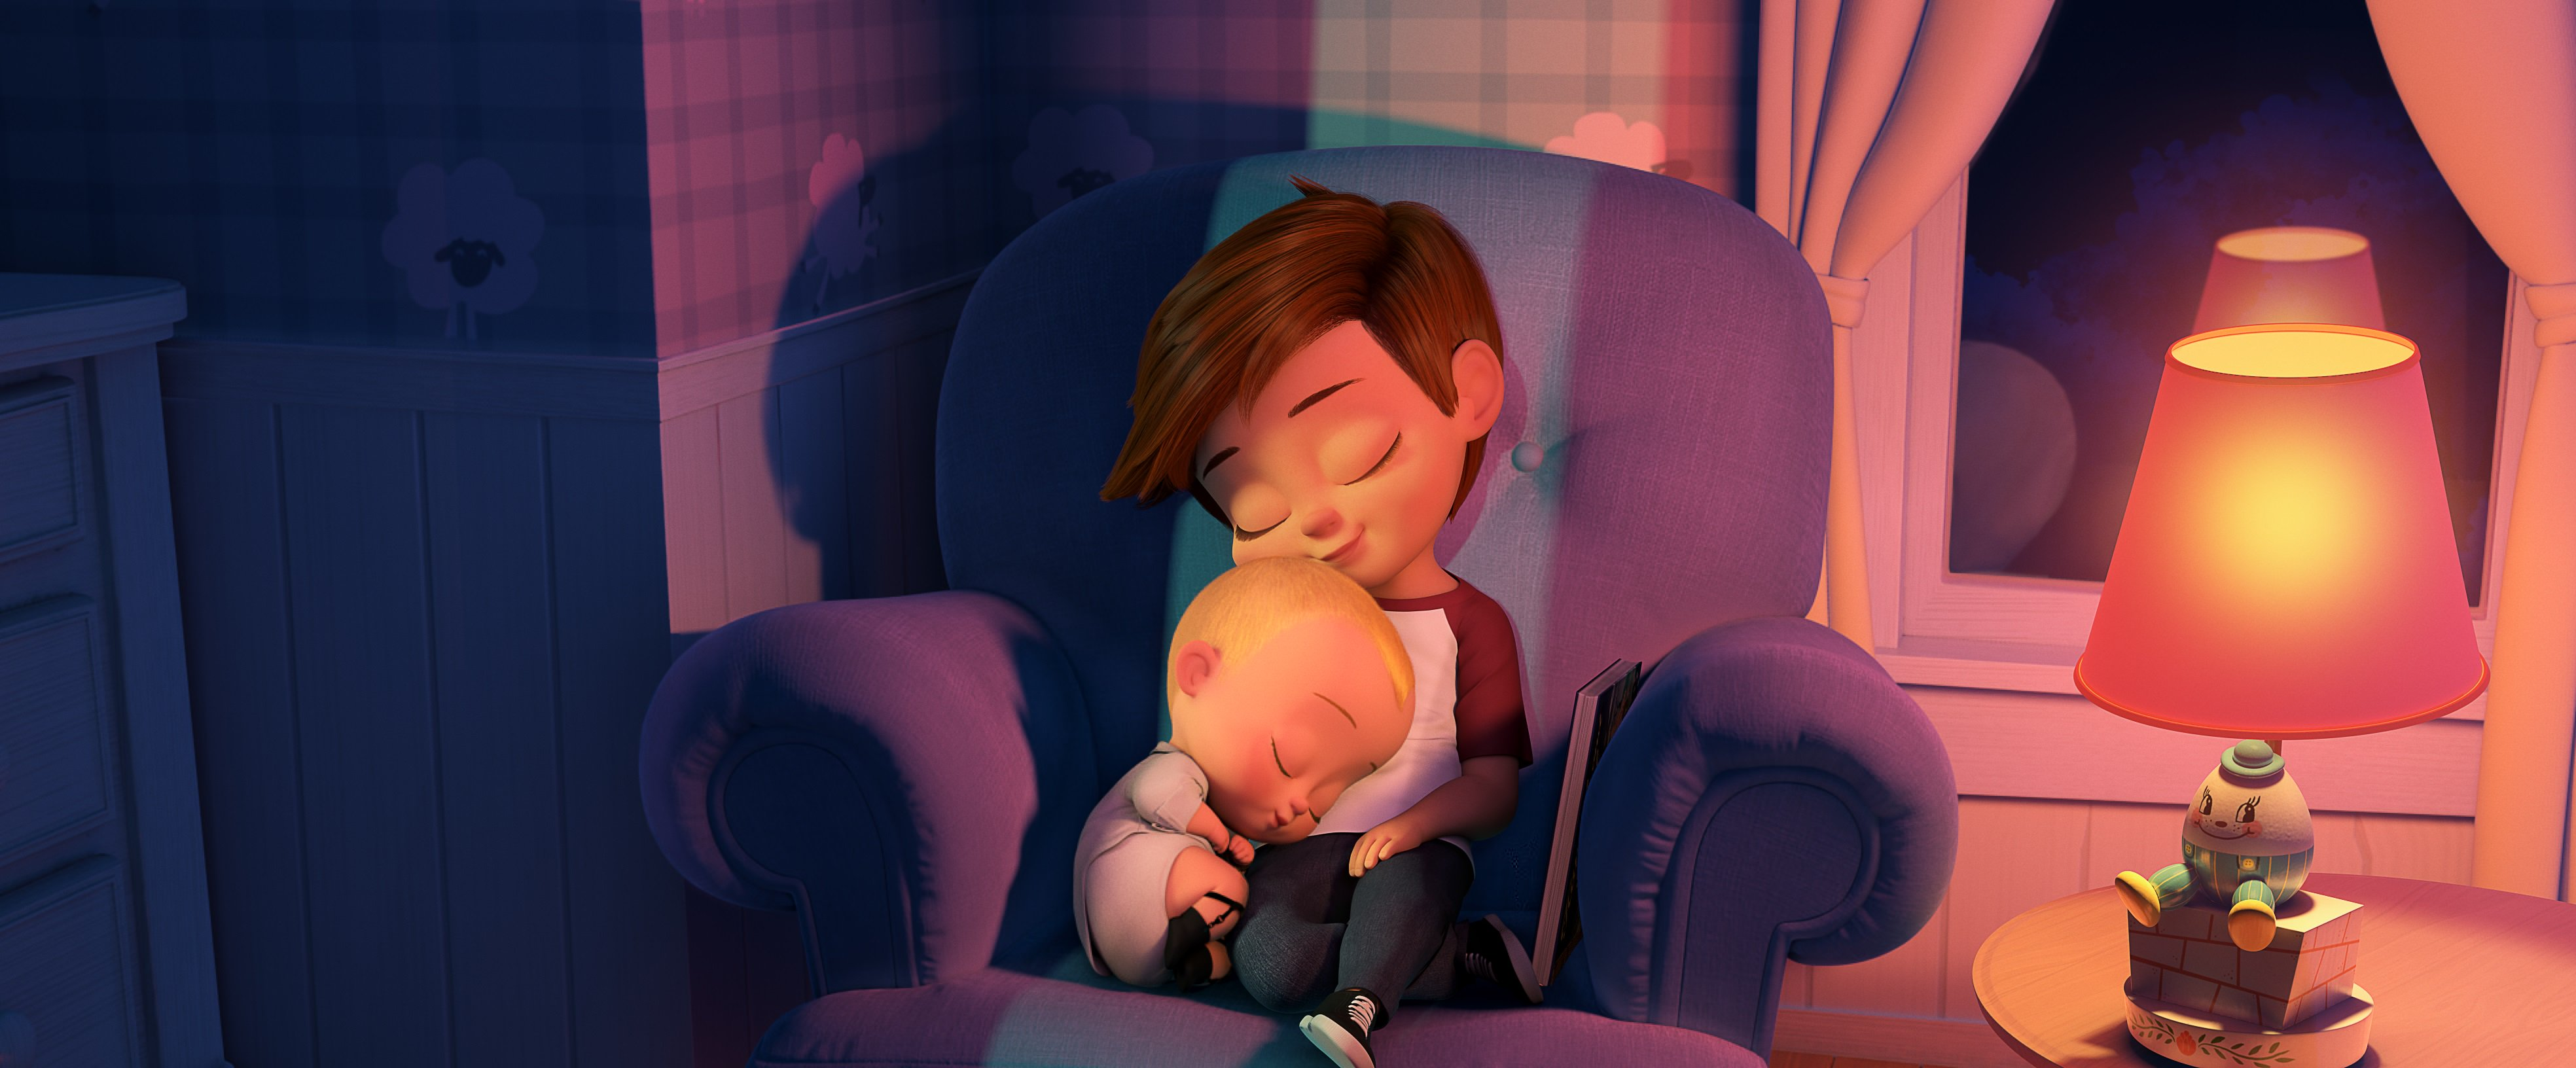 The Boss Baby 2017 Gallery IMDb